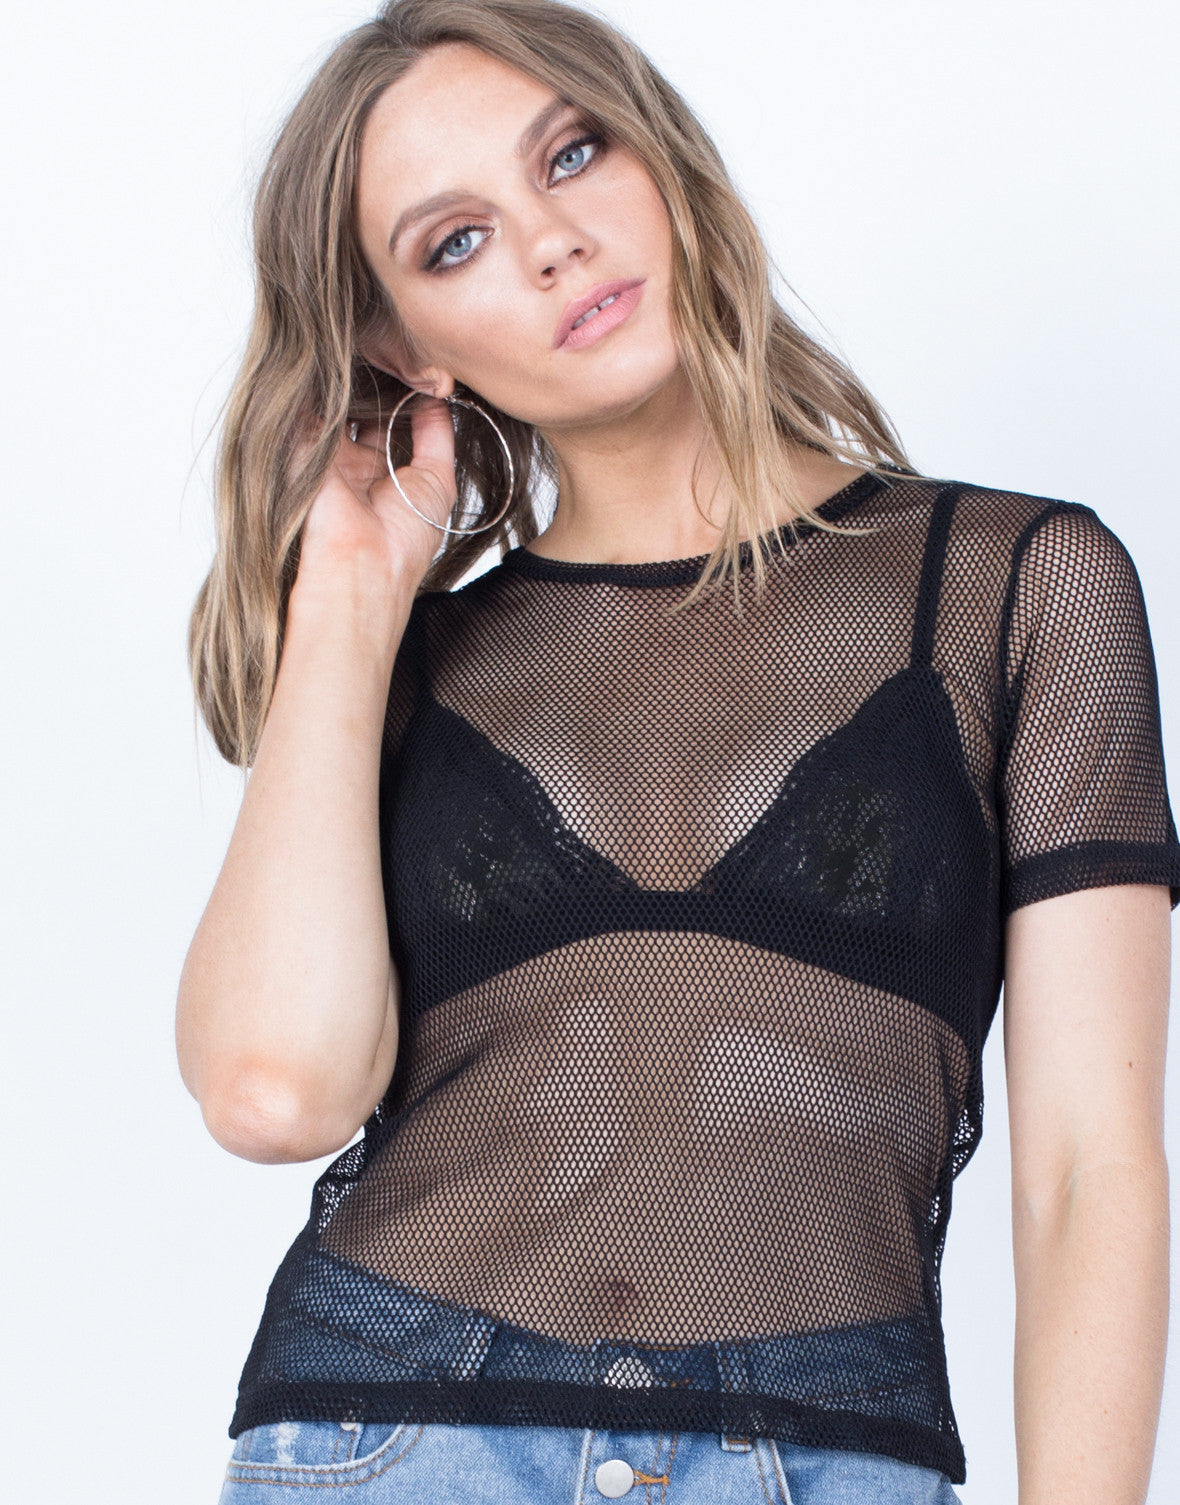 f79211853d6e12 Simply Netted T-Shirt - Black Mesh Netted Tee - Black Sheer Mesh Top ...